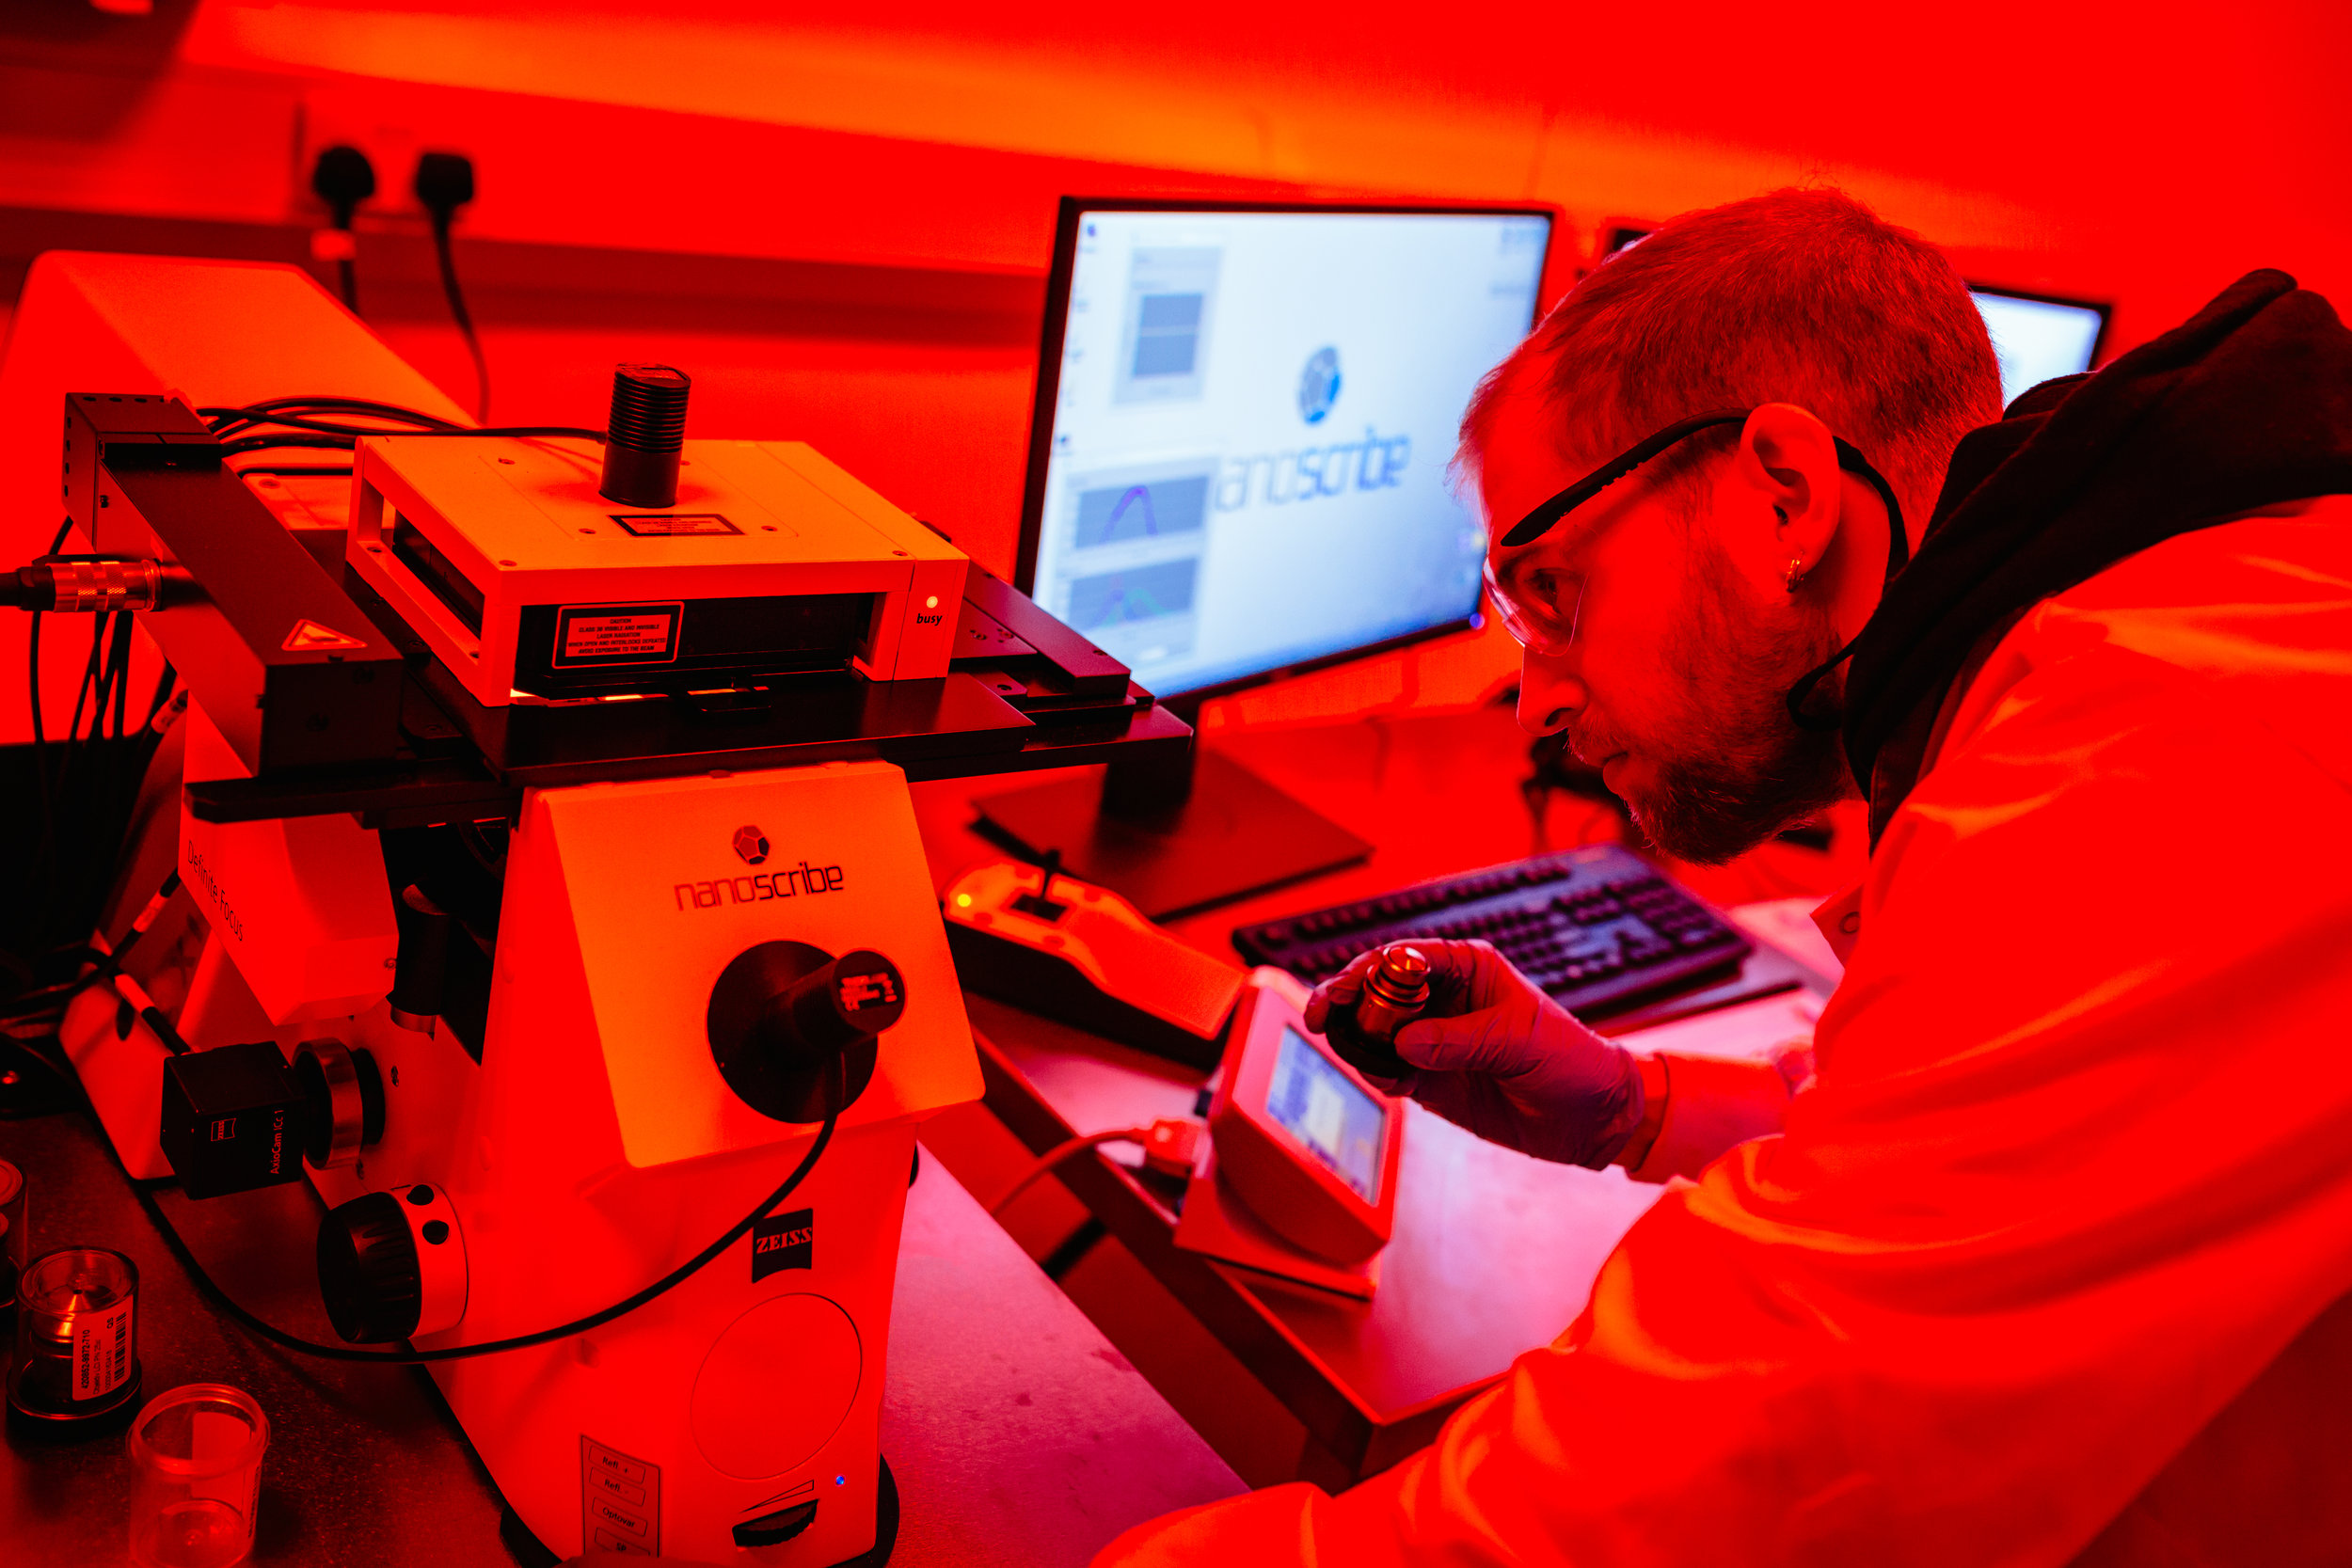 NANOSCRIBE PHOTONIC PROFESSIONAL GT 3D LASER LITHOGRAPHY SYSTEM